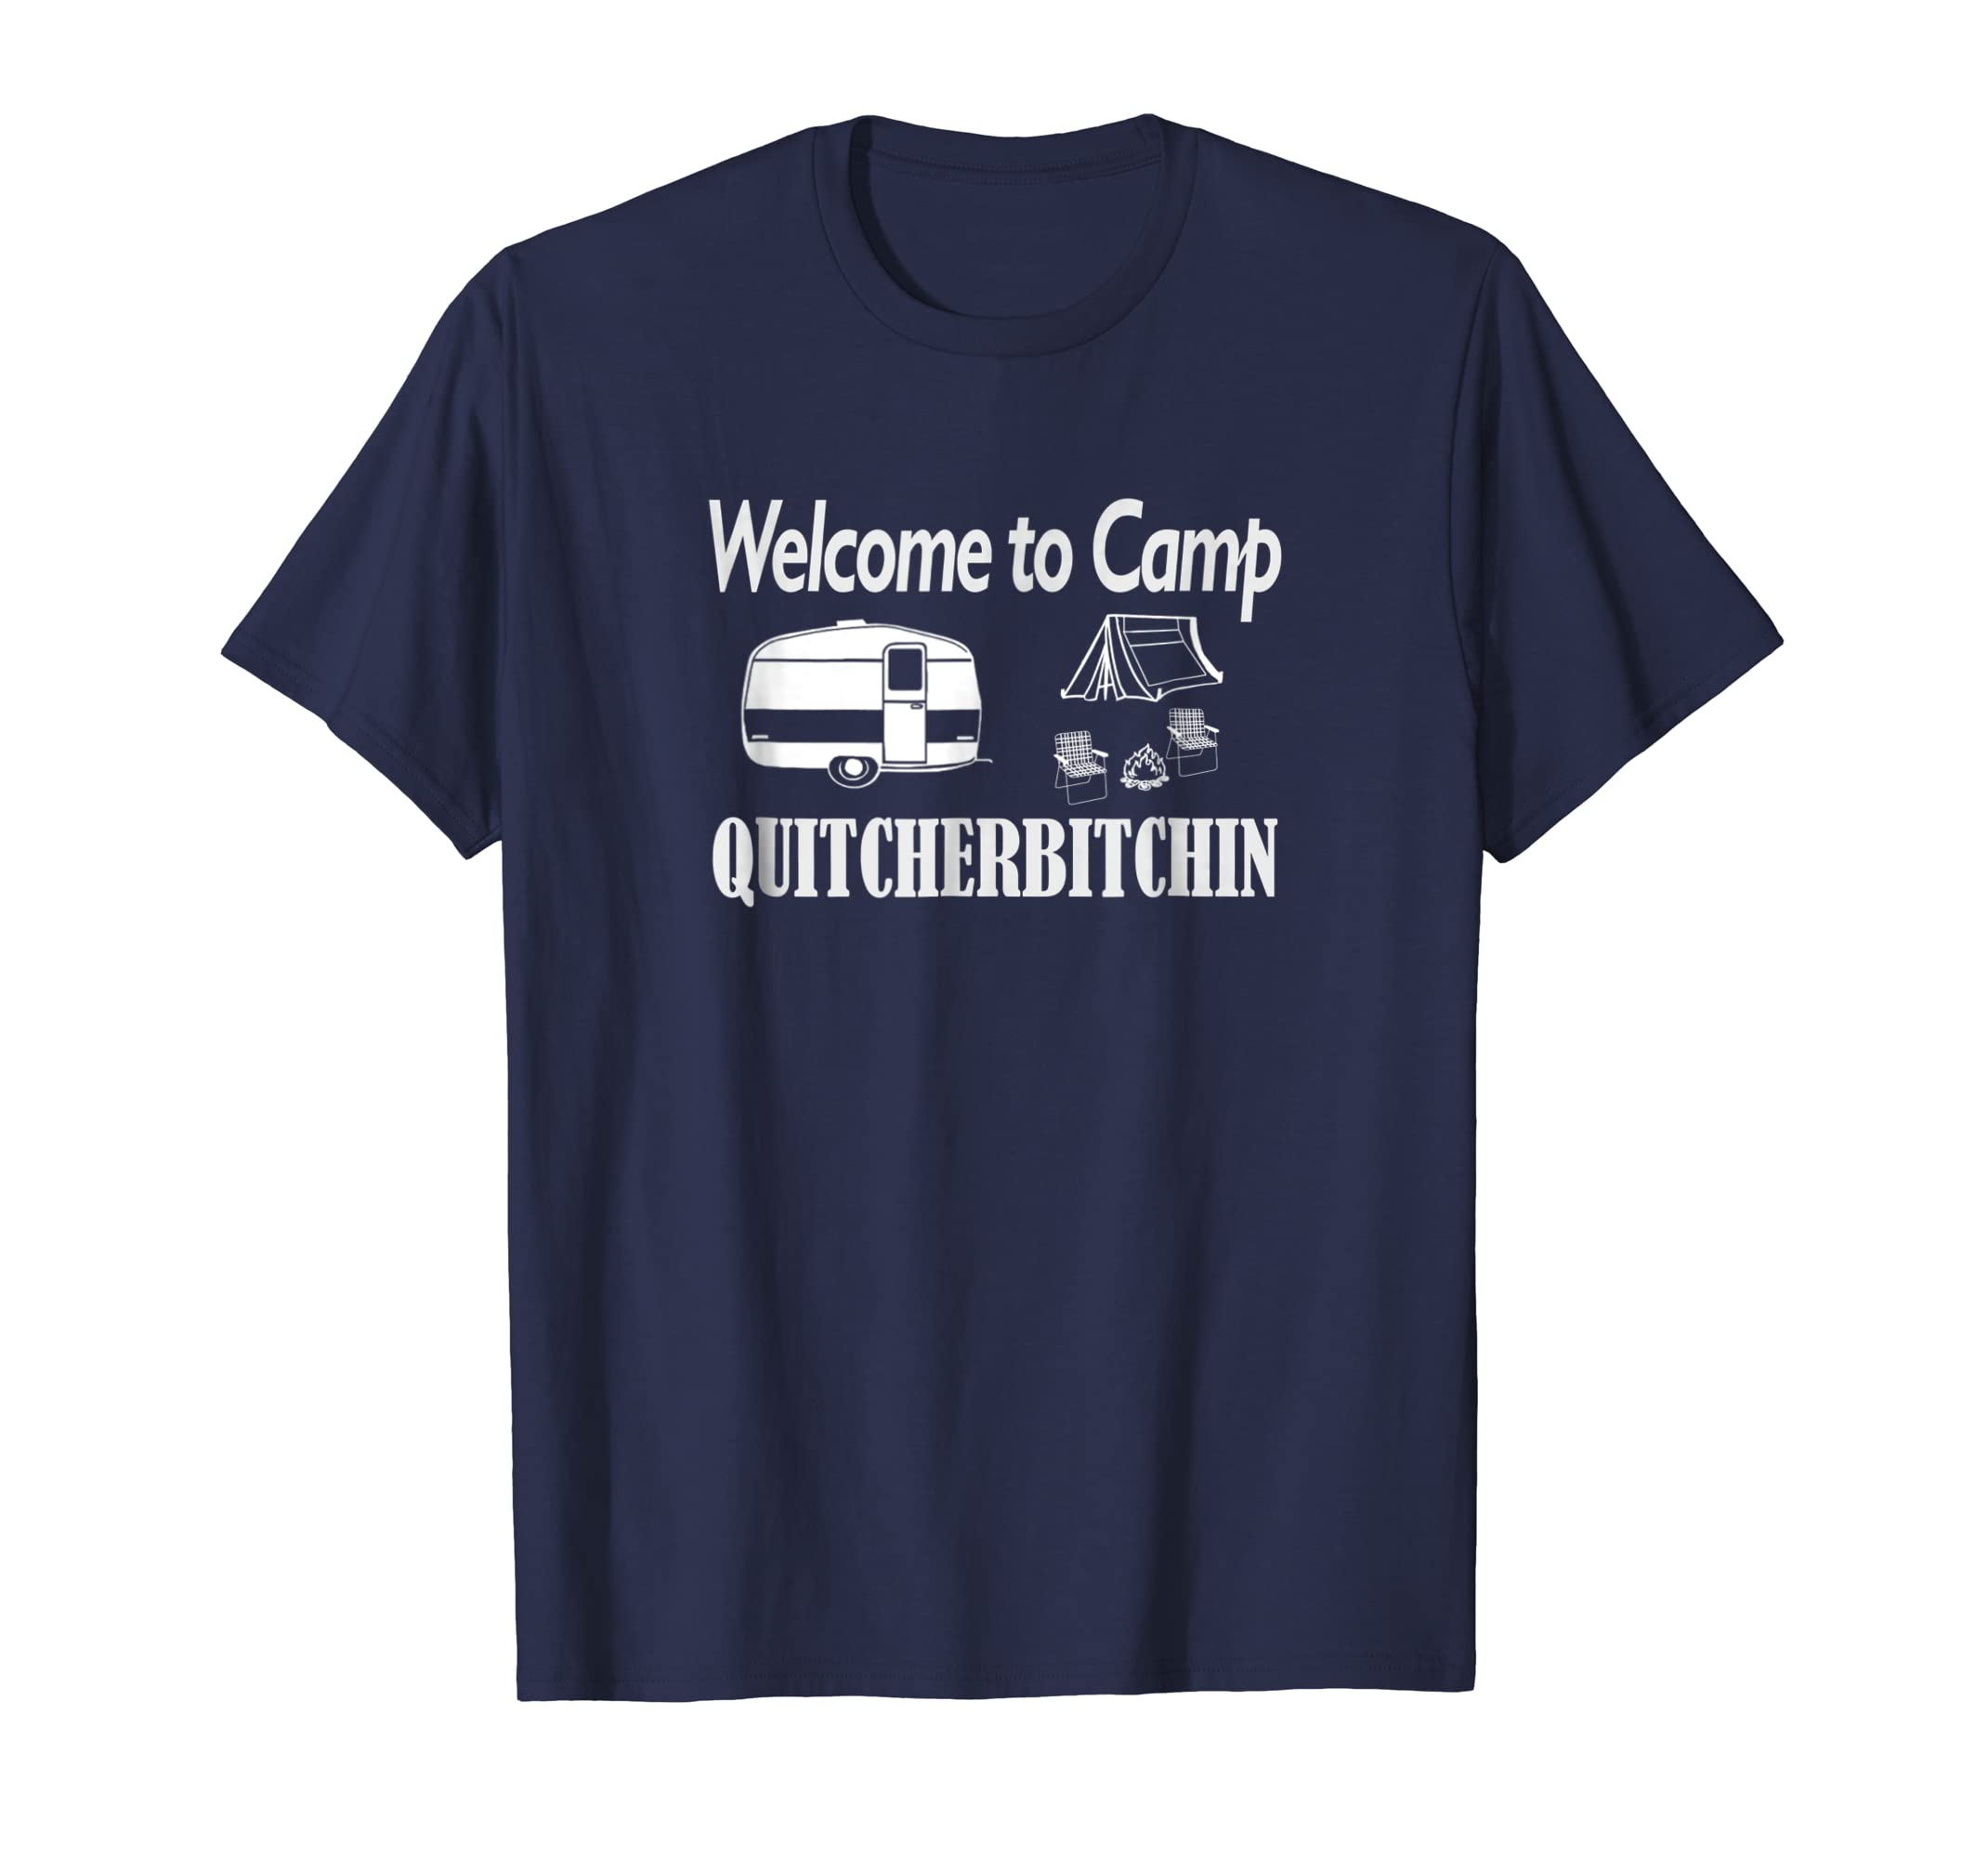 98cd91efa8 Amazon.com  Mens Funny Camping Shirt Welcome to Camp T-Shirt  Clothing